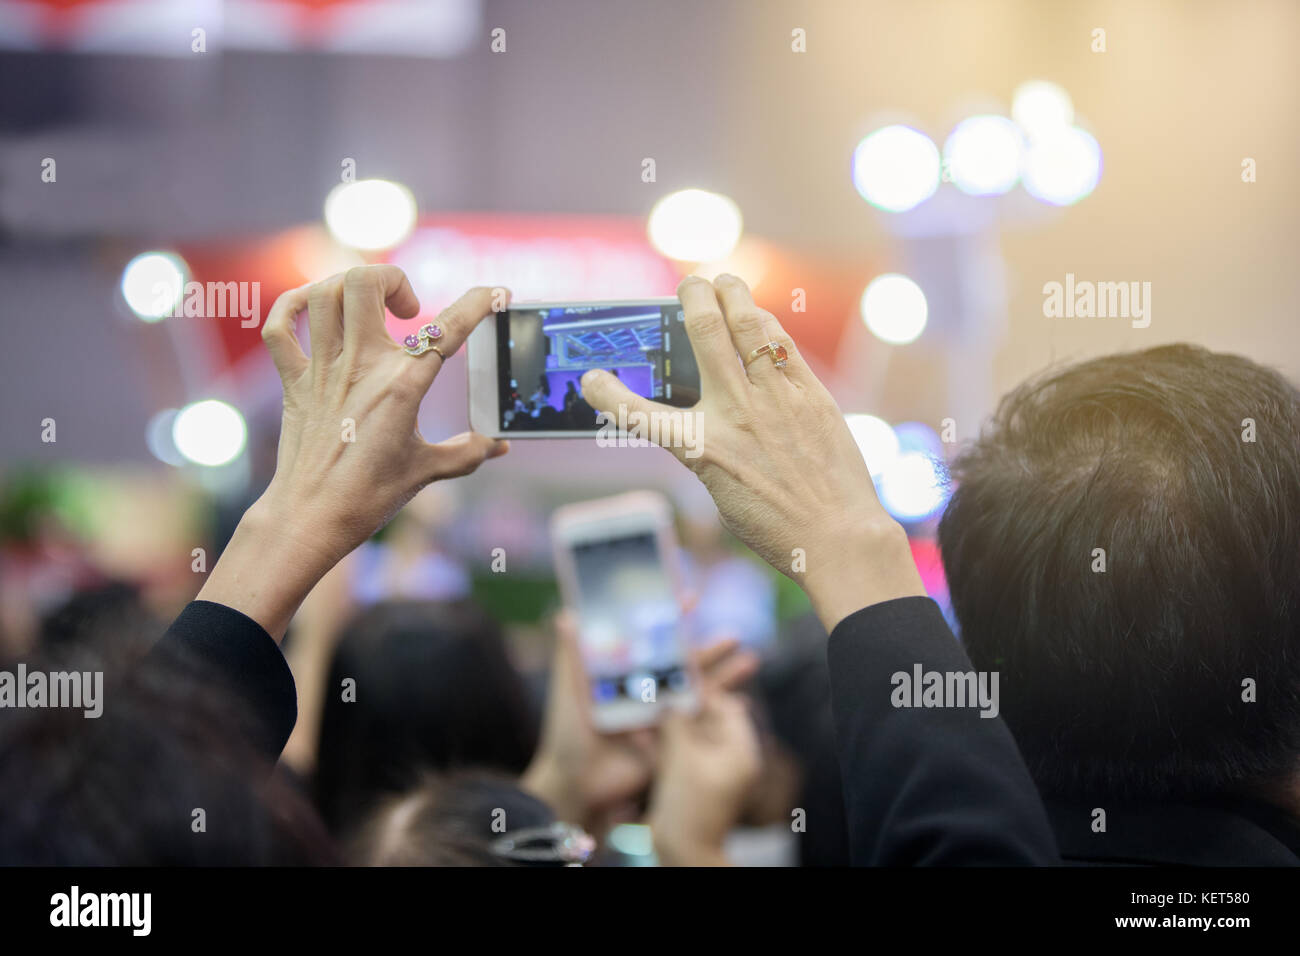 Asian old women holding smartphone and tapping screen for taking pictures. - Stock Image